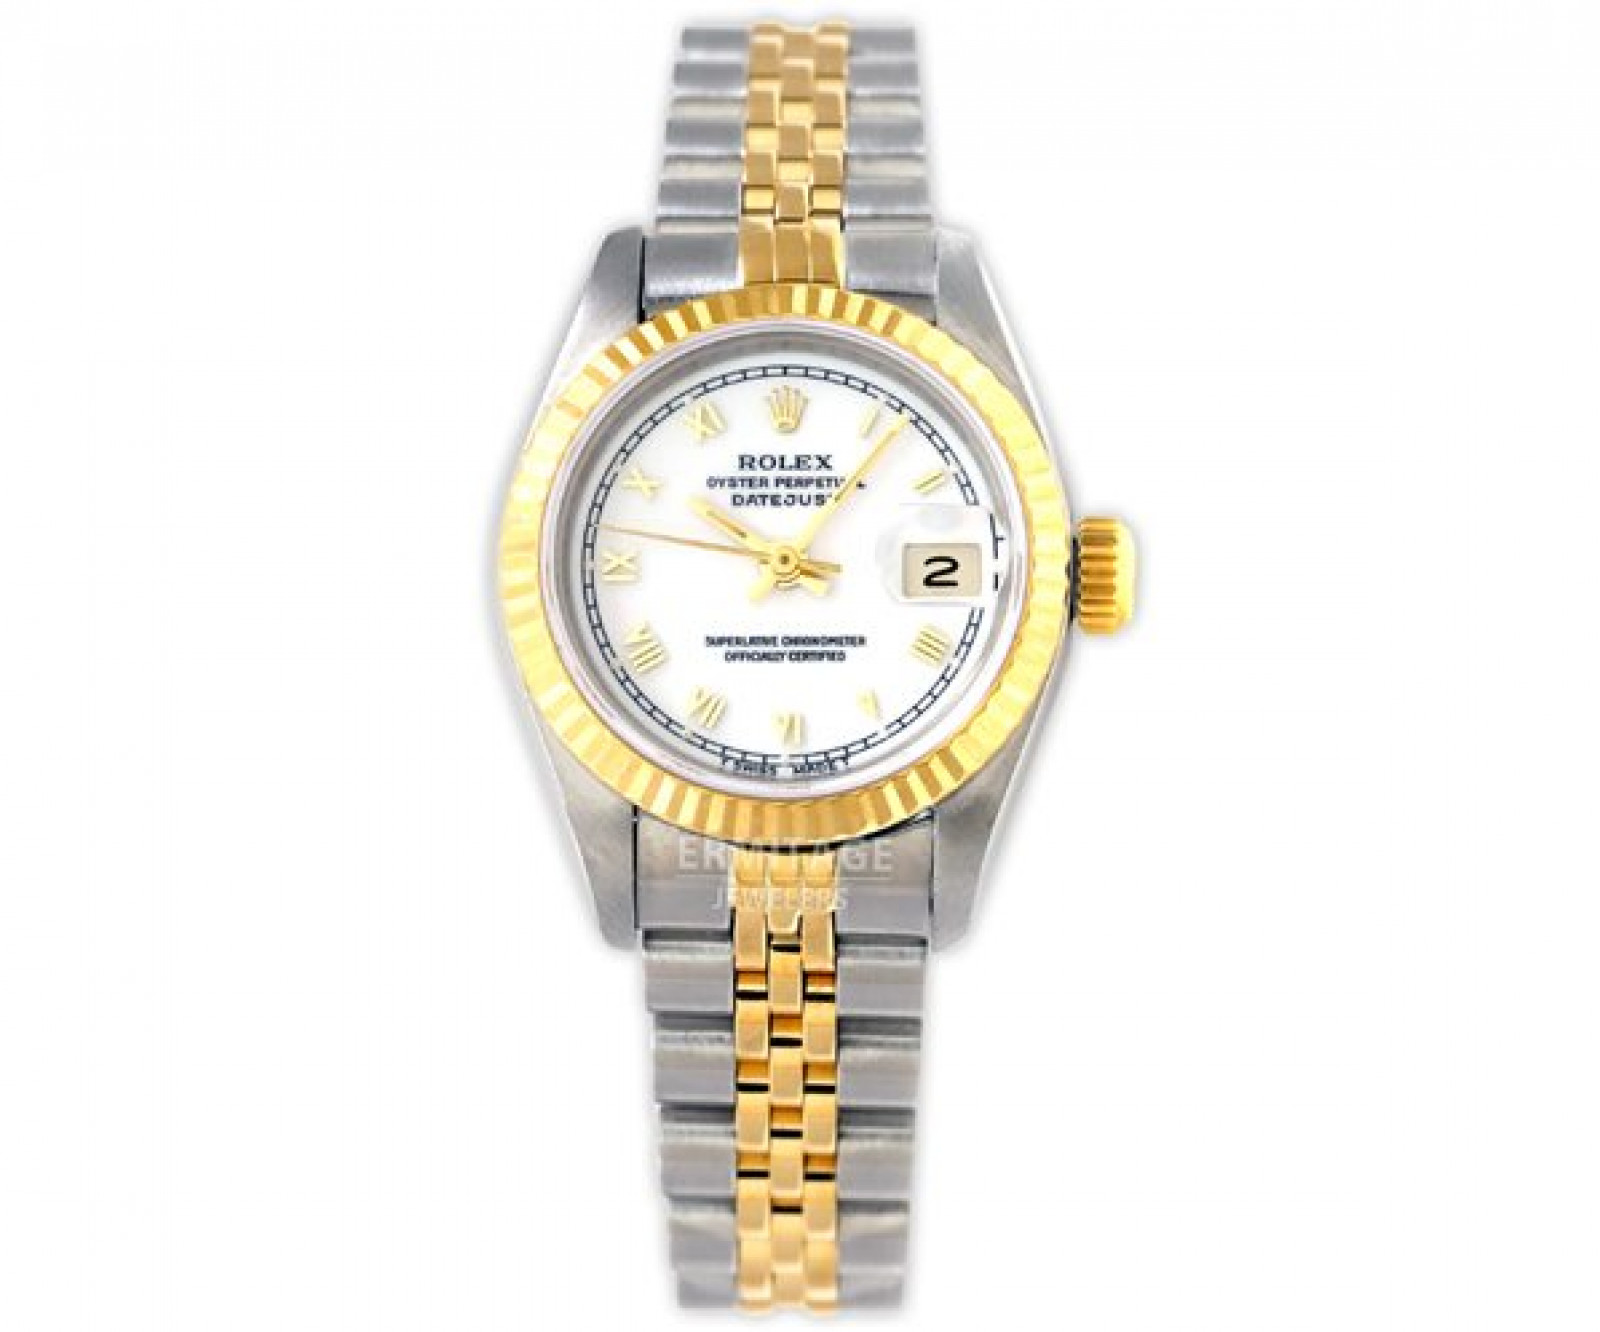 Pre-Owned Rolex Datejust 69173 Year 1992